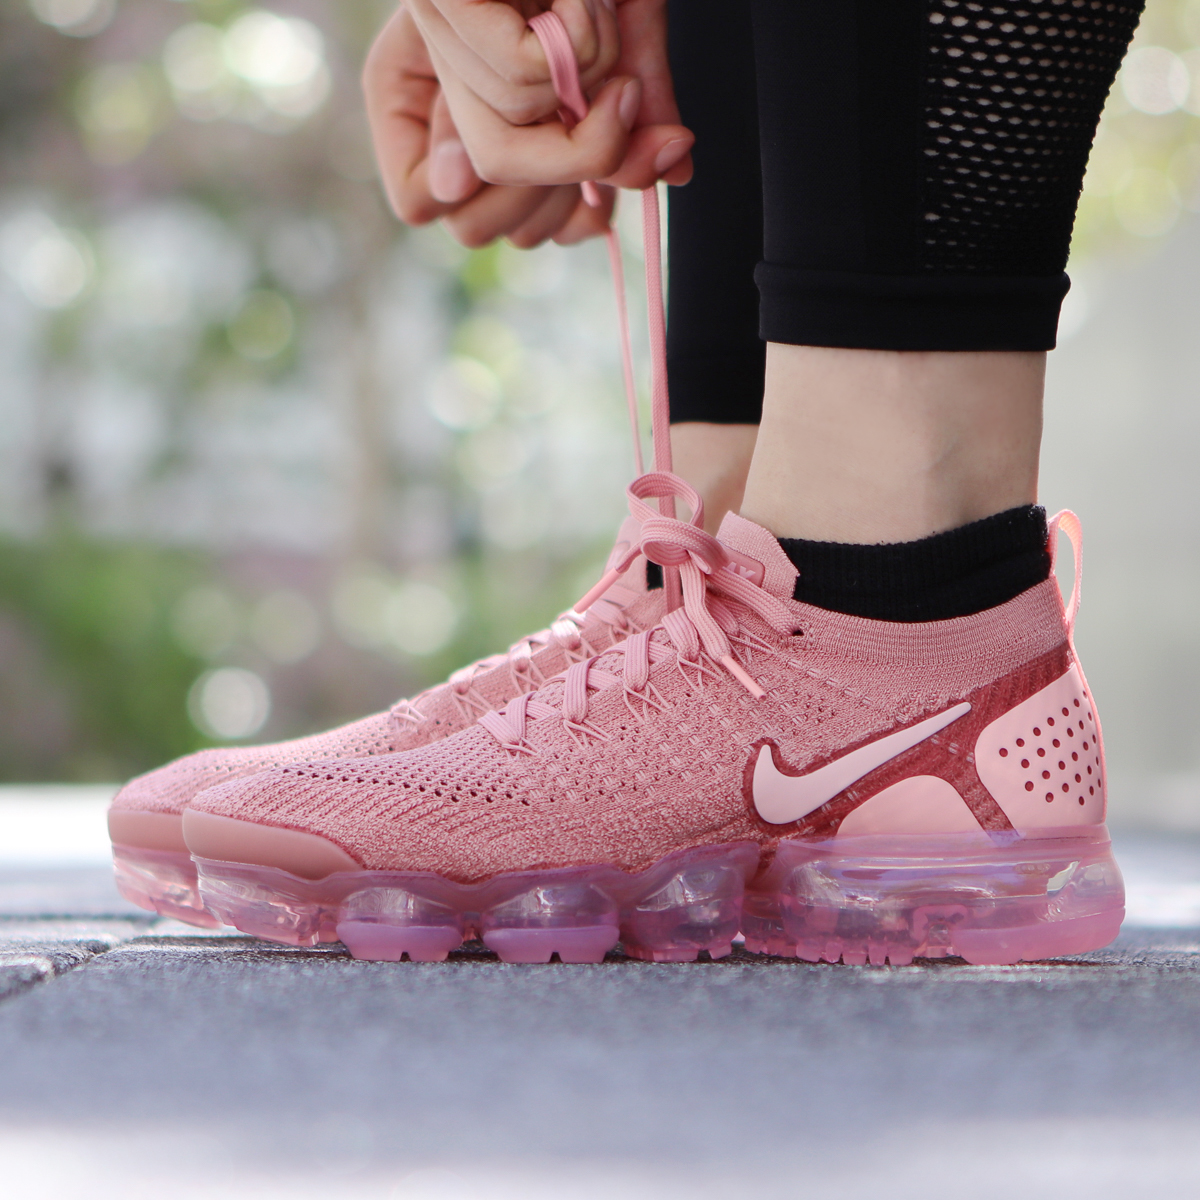 f323f92109e5 NIKE W AIR VAPORMAX FLYKNIT 2 (Nike women air vapor max fried food knit 2)  RUST PINK STORM PINK-PINK TINT 18FA-S